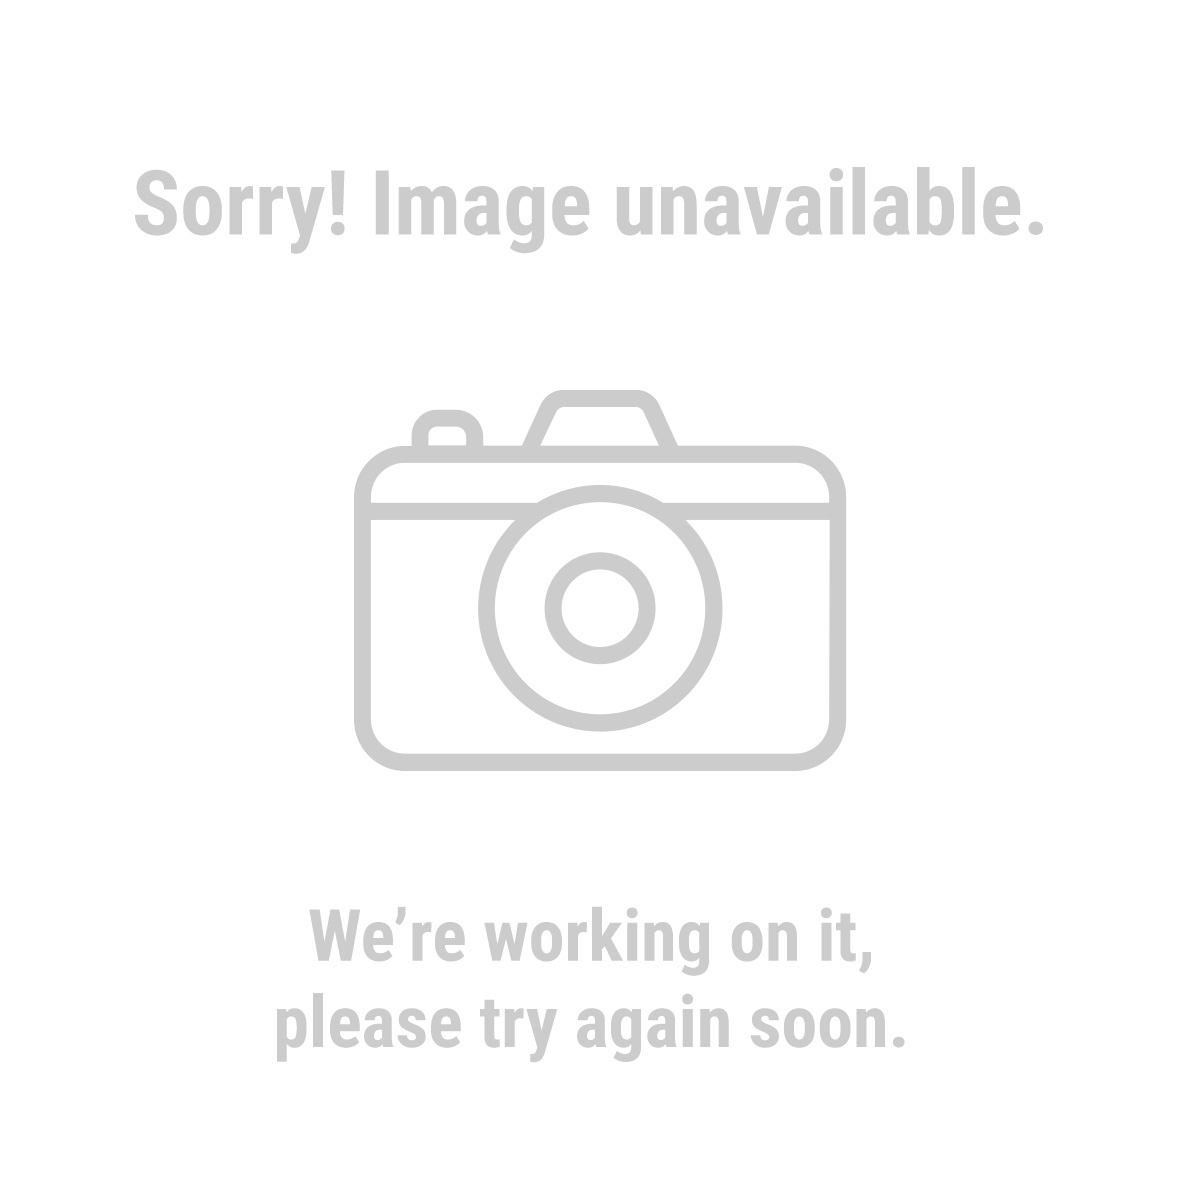 Western Safety 94328 Reusable Corded Earplugs